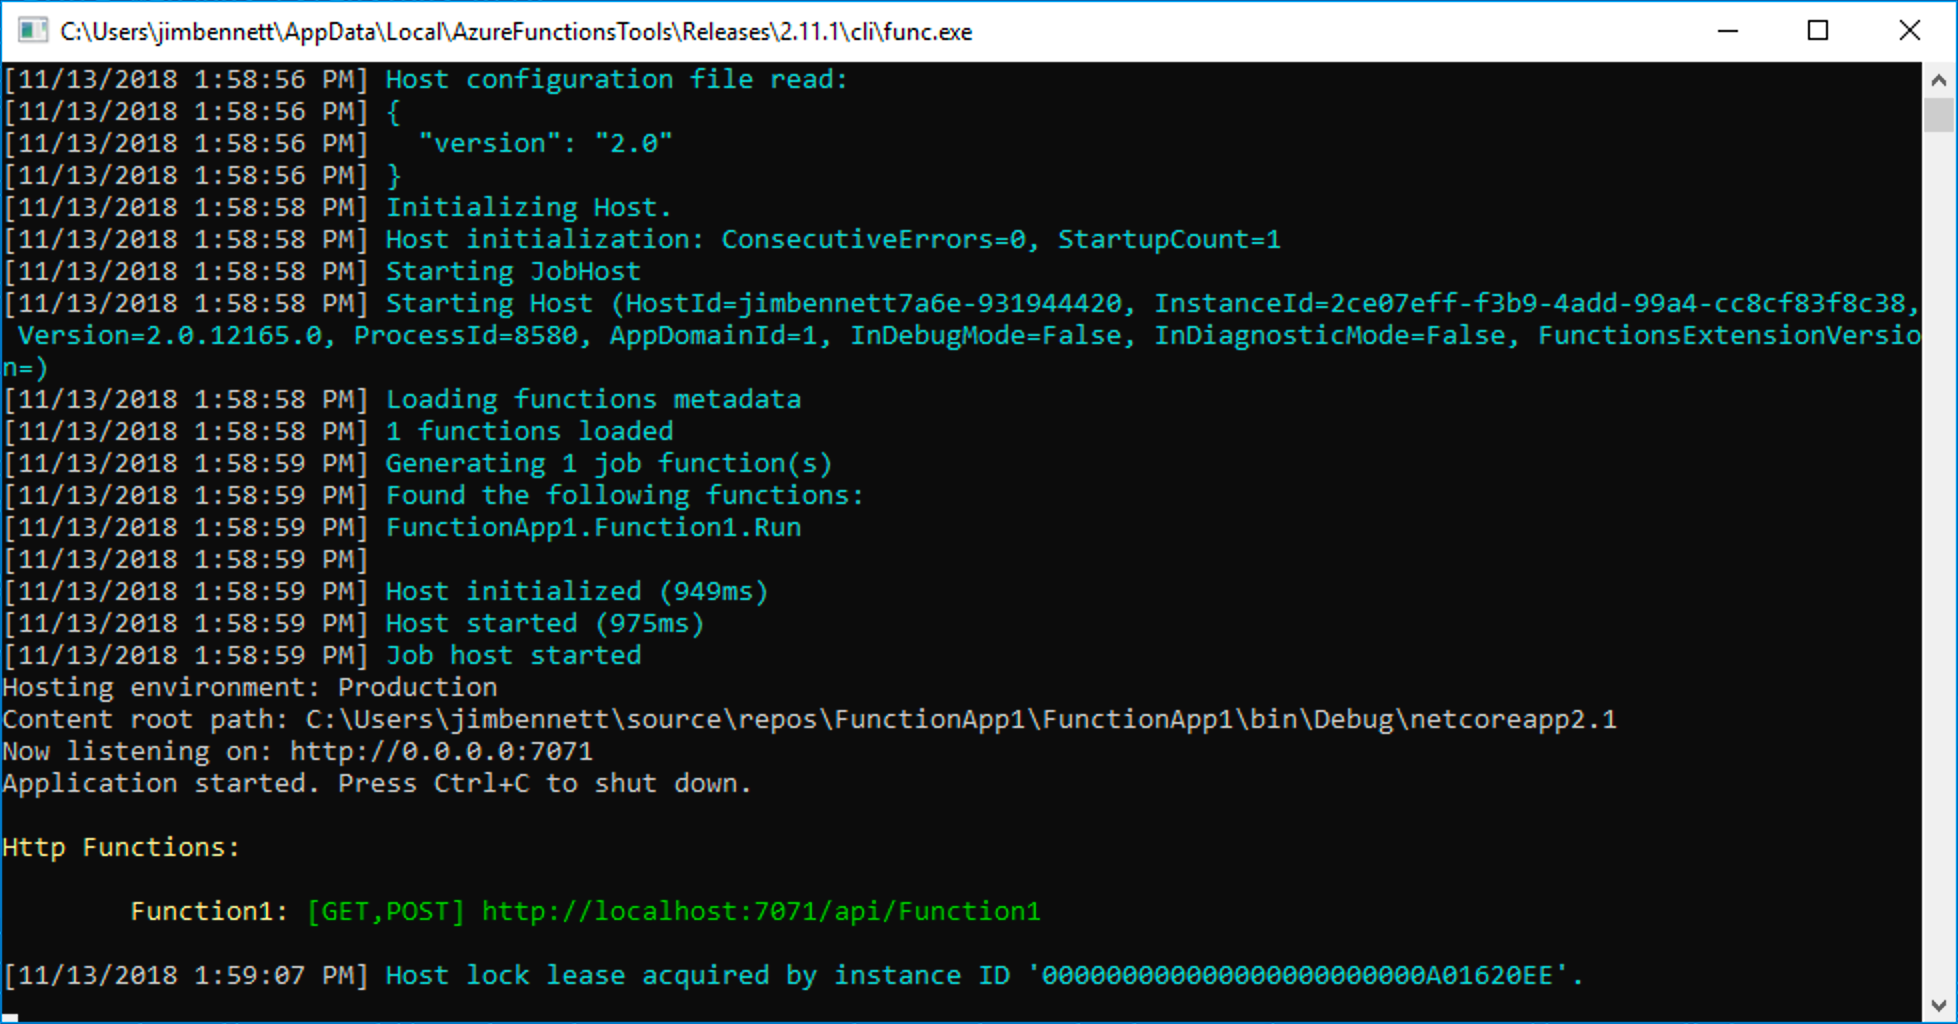 The functions app running in a console window